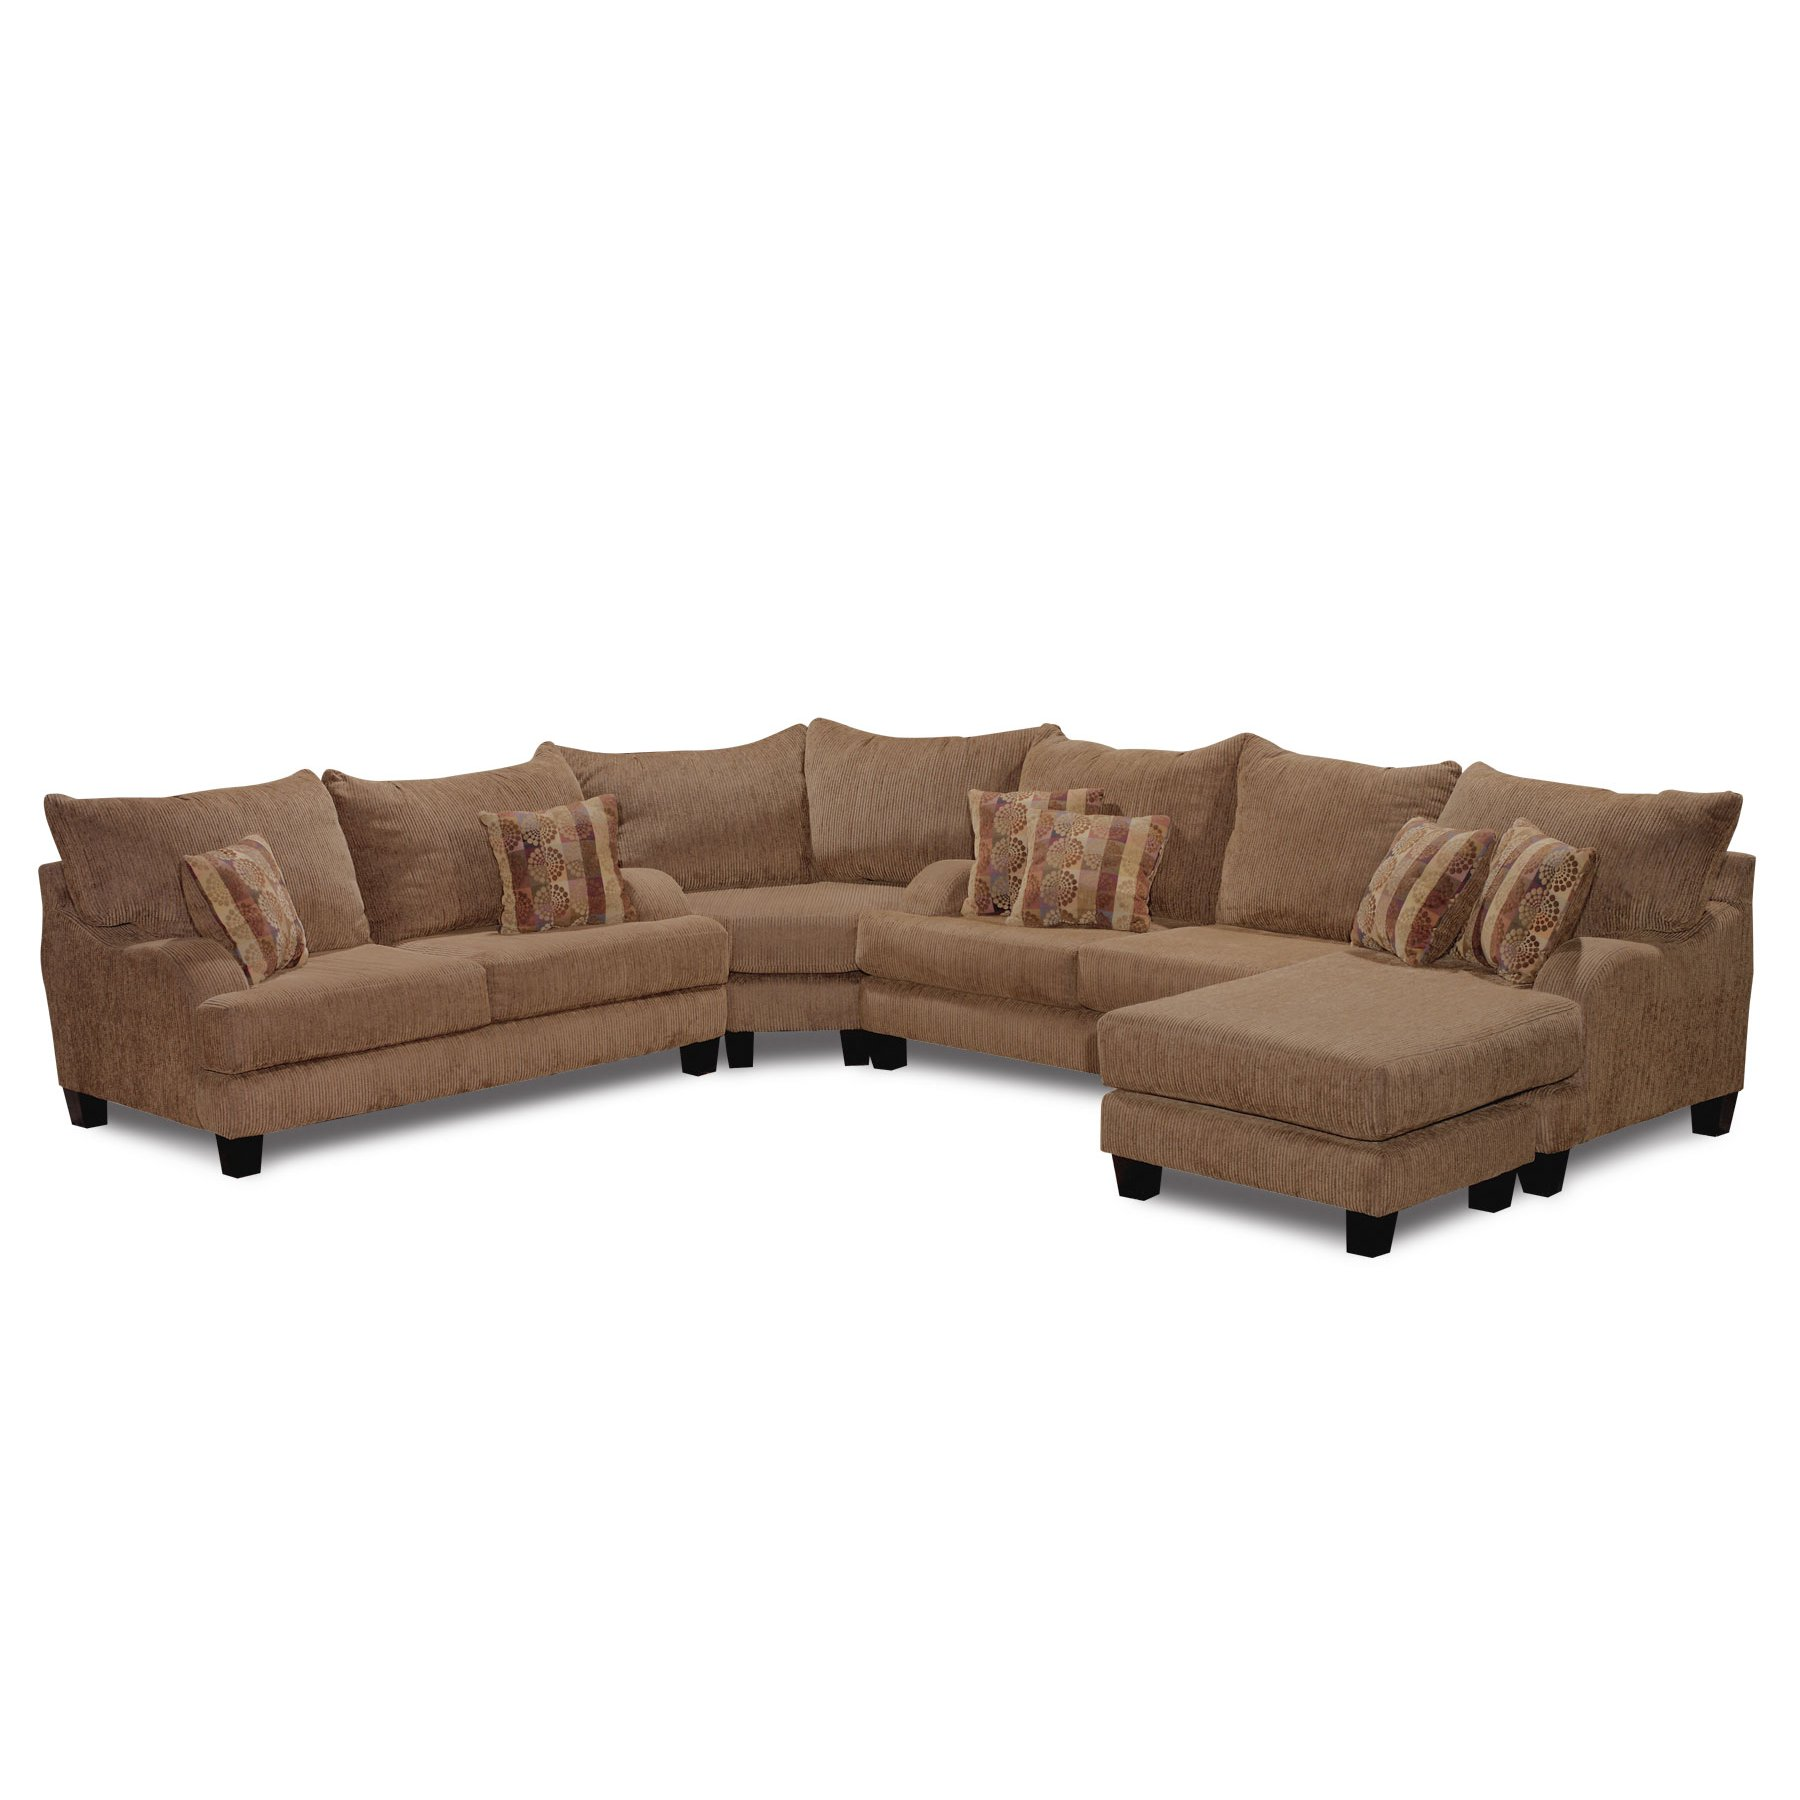 Sectionals fabric sectionals fabric sectional sofas RC Willey